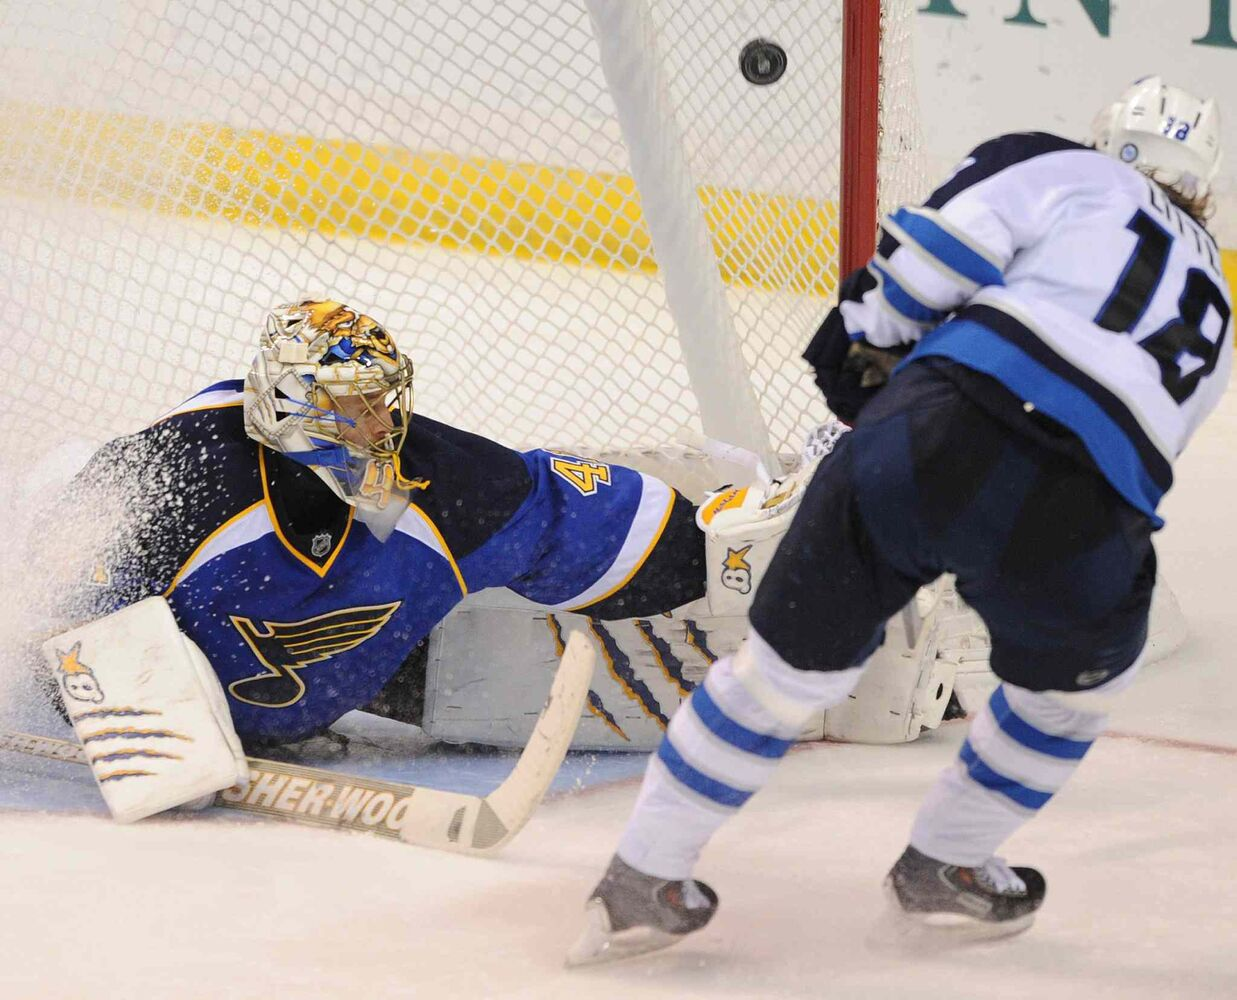 St. Louis Blues goalie Jaroslav Halak can't block a goal by Winnipeg Jets forward Bryan Little during the third period of an NHL game in St. Louis Tuesday. The Blues won 3-2.